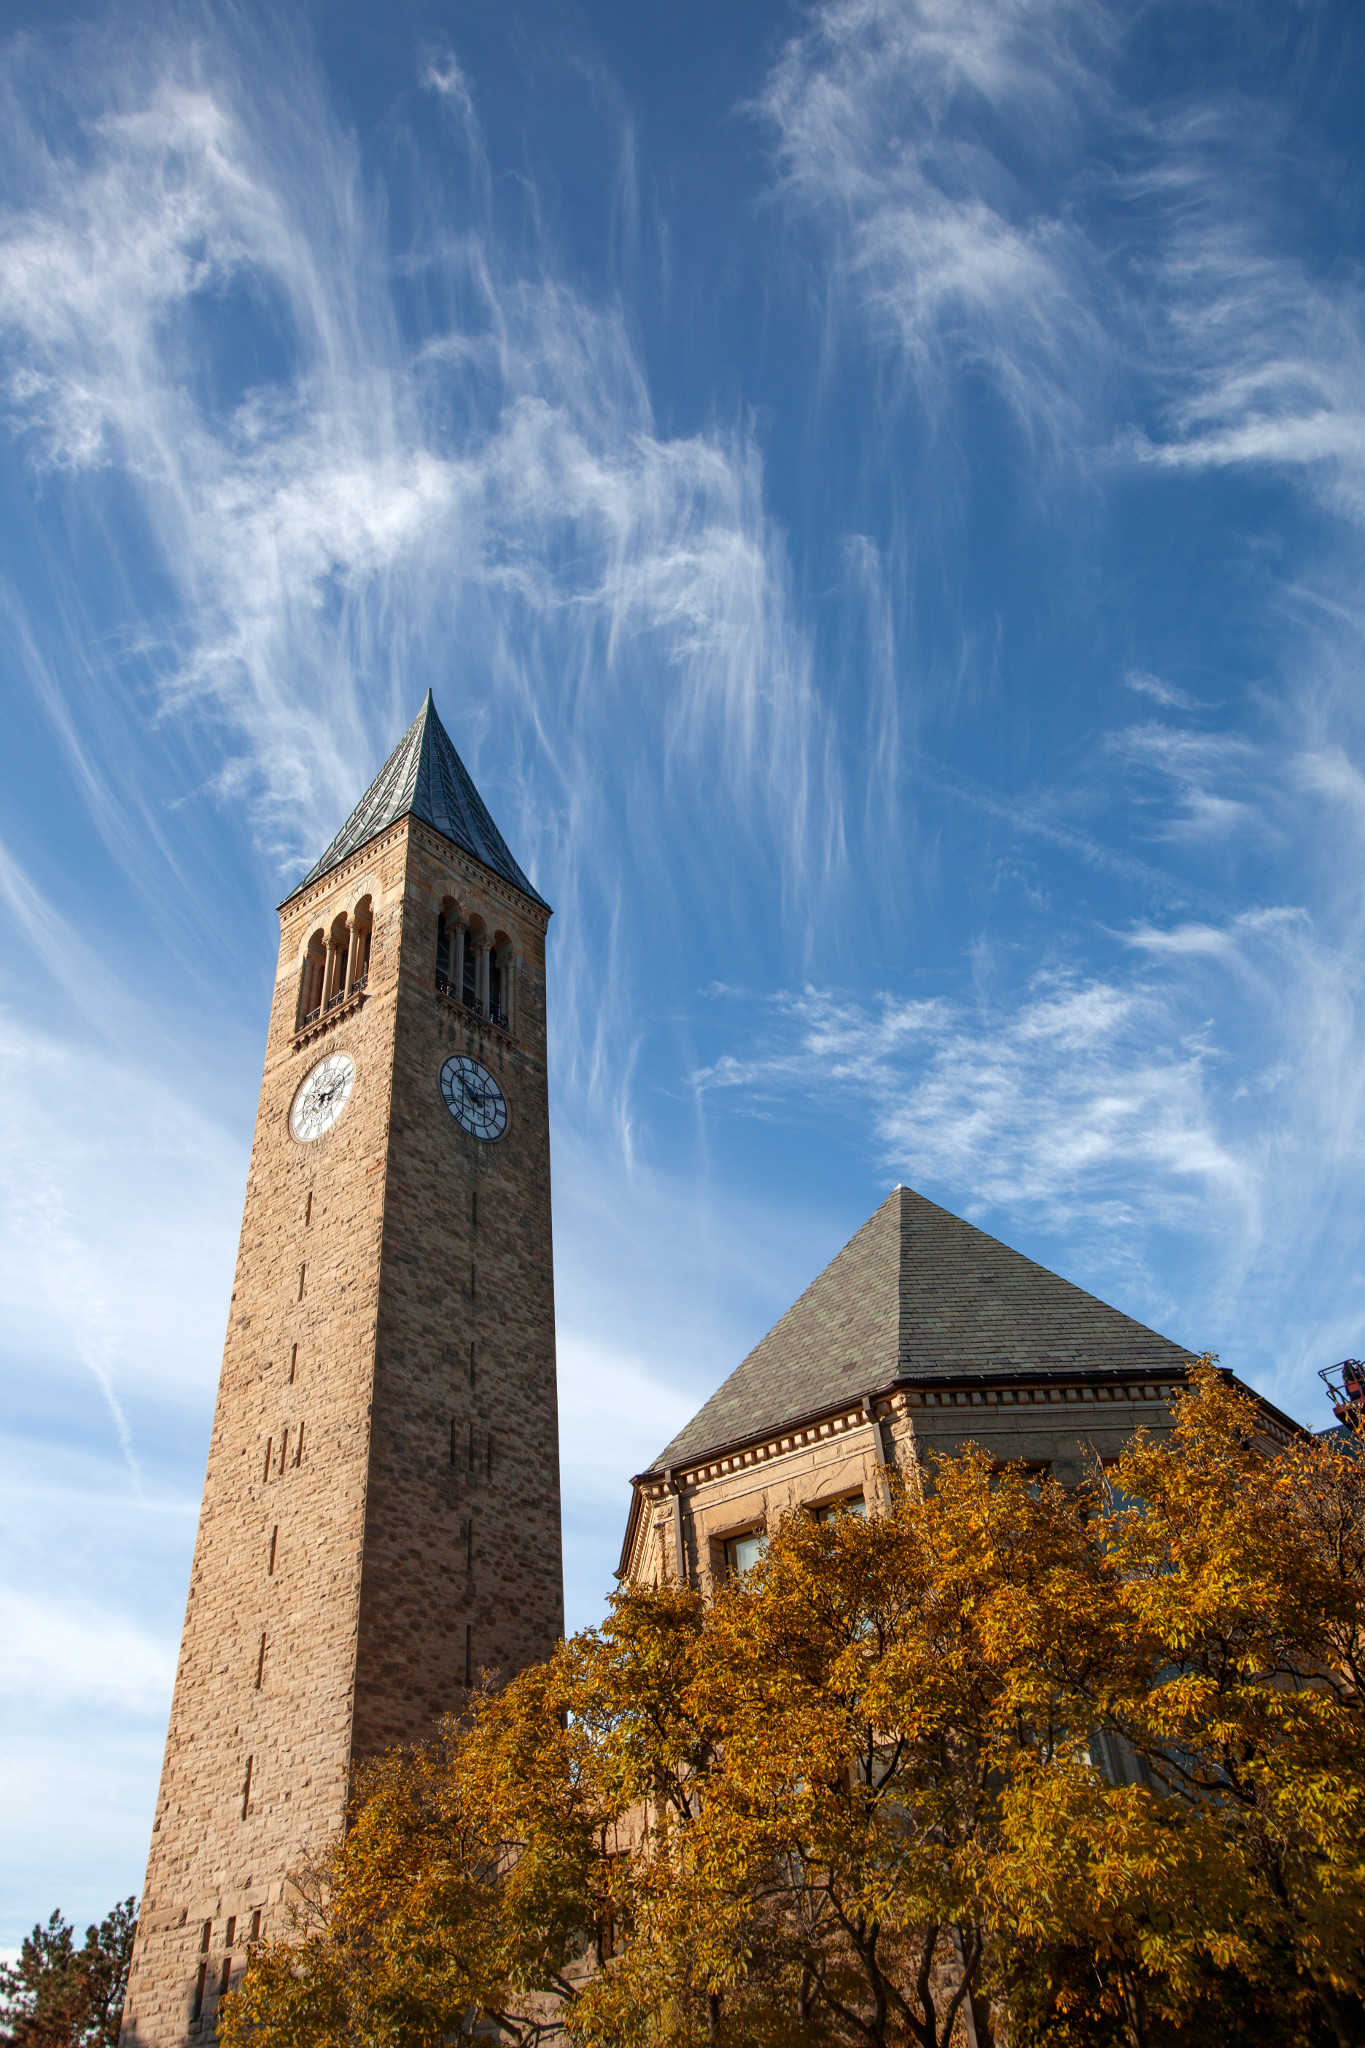 The famous Cornell Clock Tower